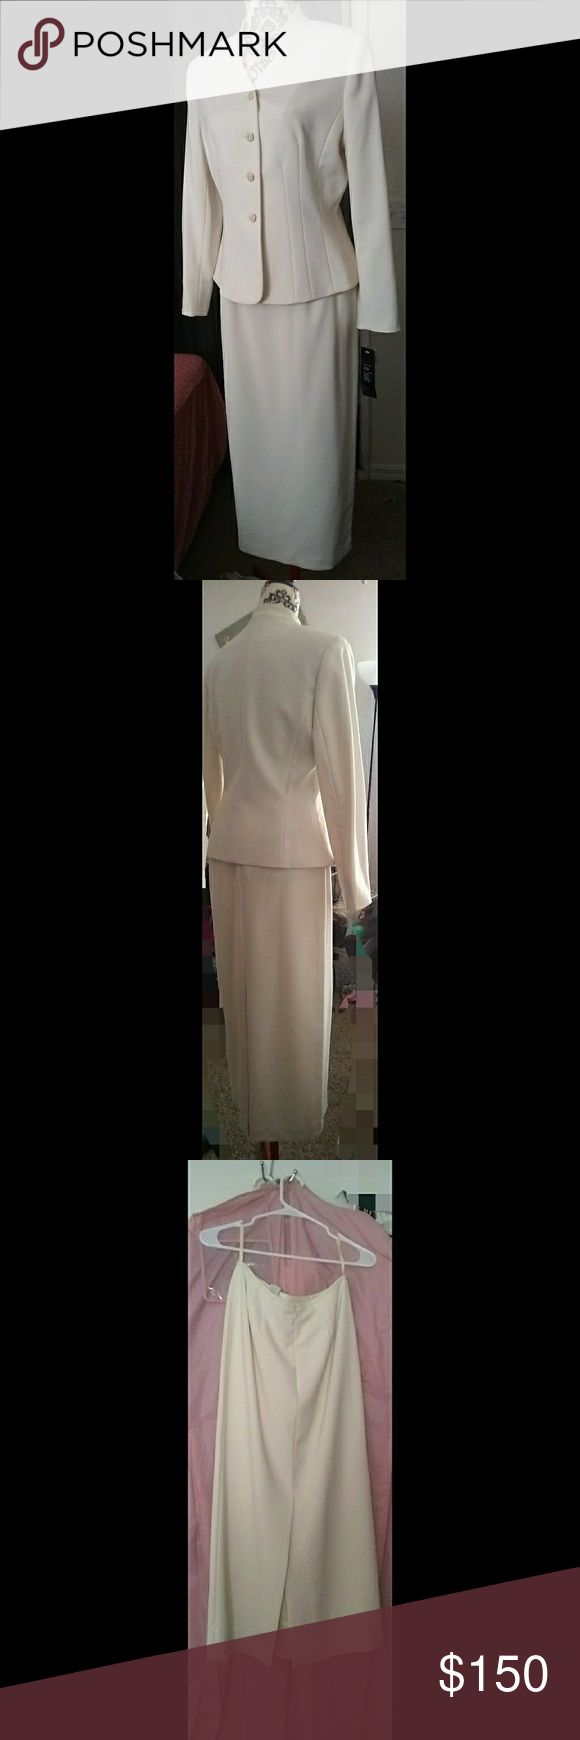 Women's Skirt Suit Maxi Length Skirt, with Kick Pleat Split at Back of Skirt. Princess Seams is Detailed on Shell of a Silk Lined Jacket. NWT. Mother of Pearl & Gold Buttons. Garment Bag Included Le Suit Skirts Skirt Sets